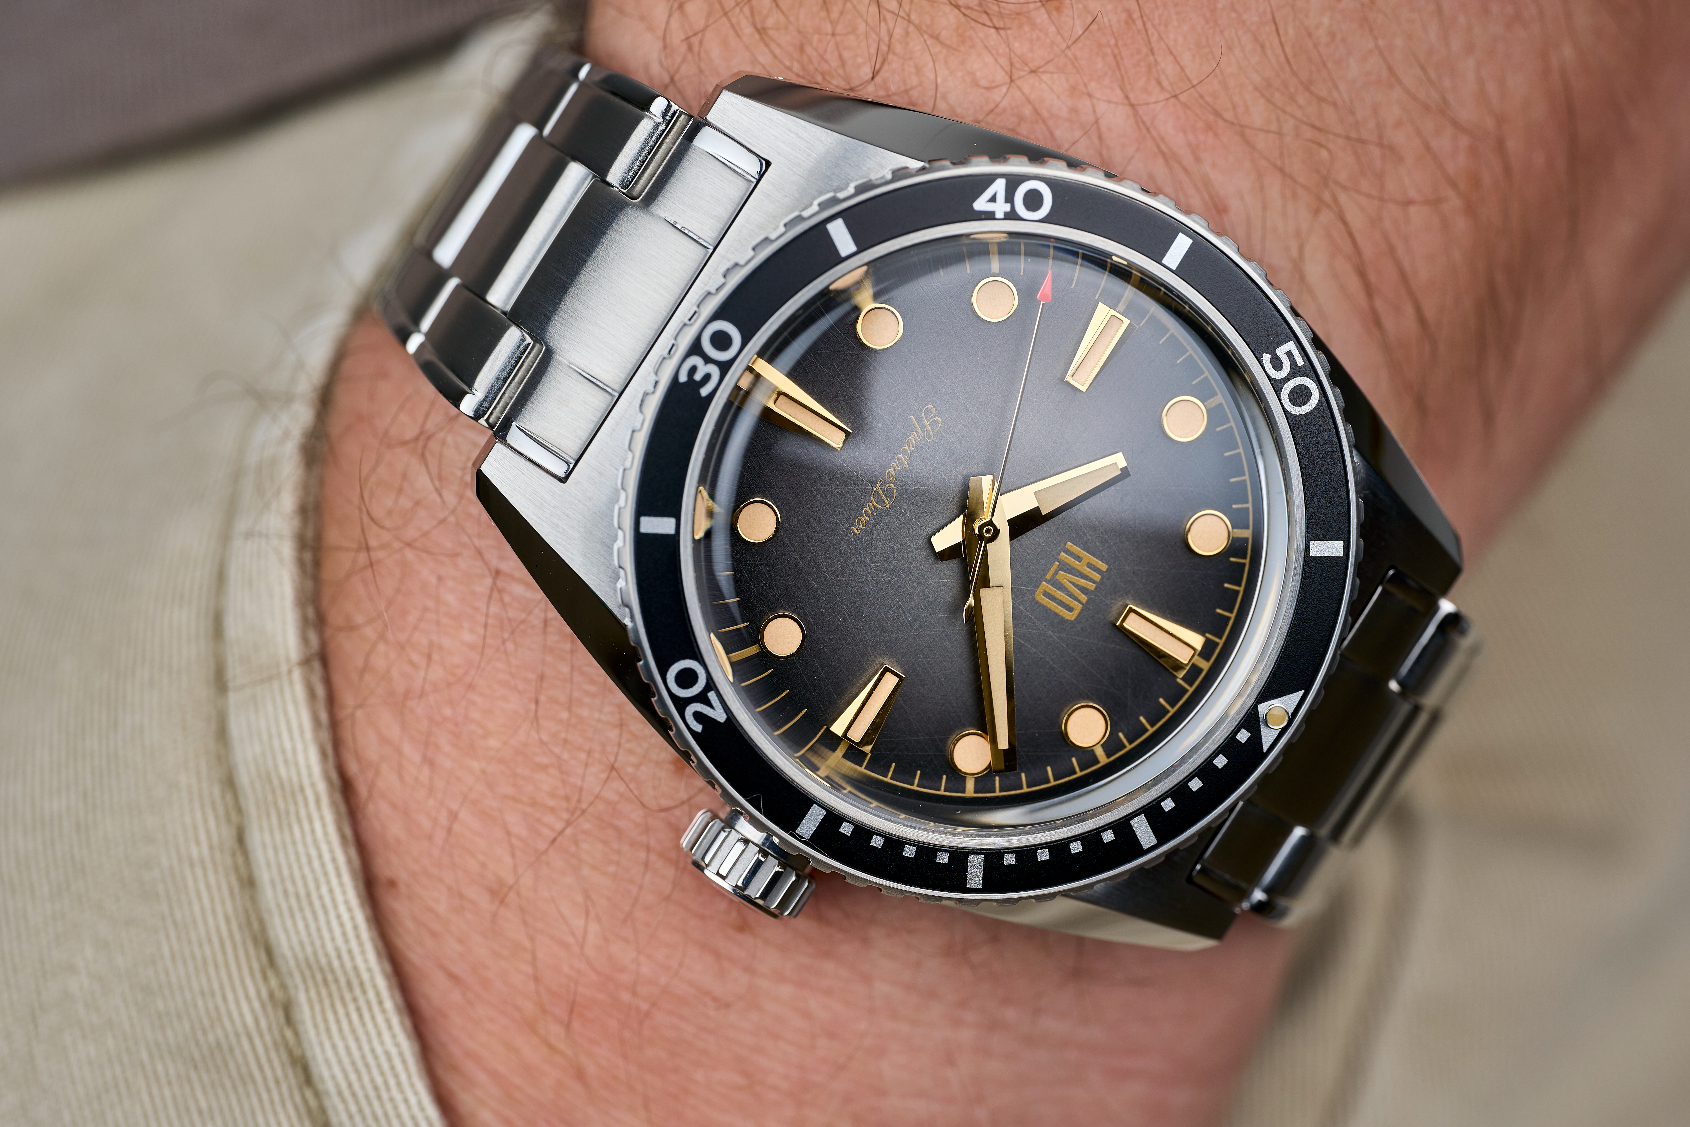 MICRO MONDAYS: The HVD SpectreDiver is a cracking vintage diver for under $400